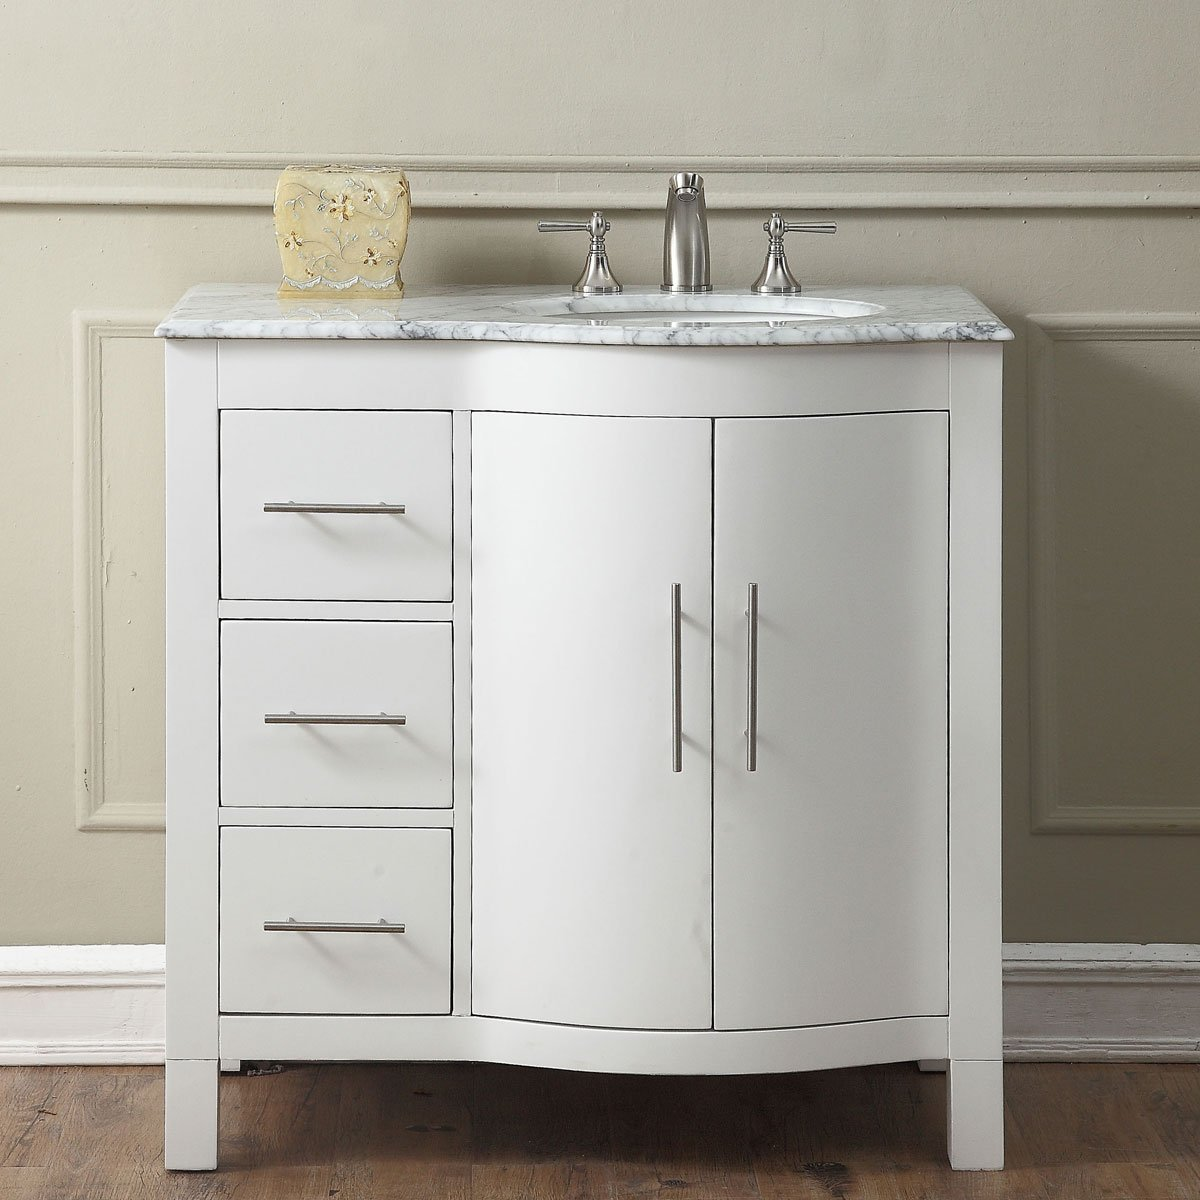 36 Inch Single Sink Contemporary Bathroom Vanity Cabinet In White Finish Car